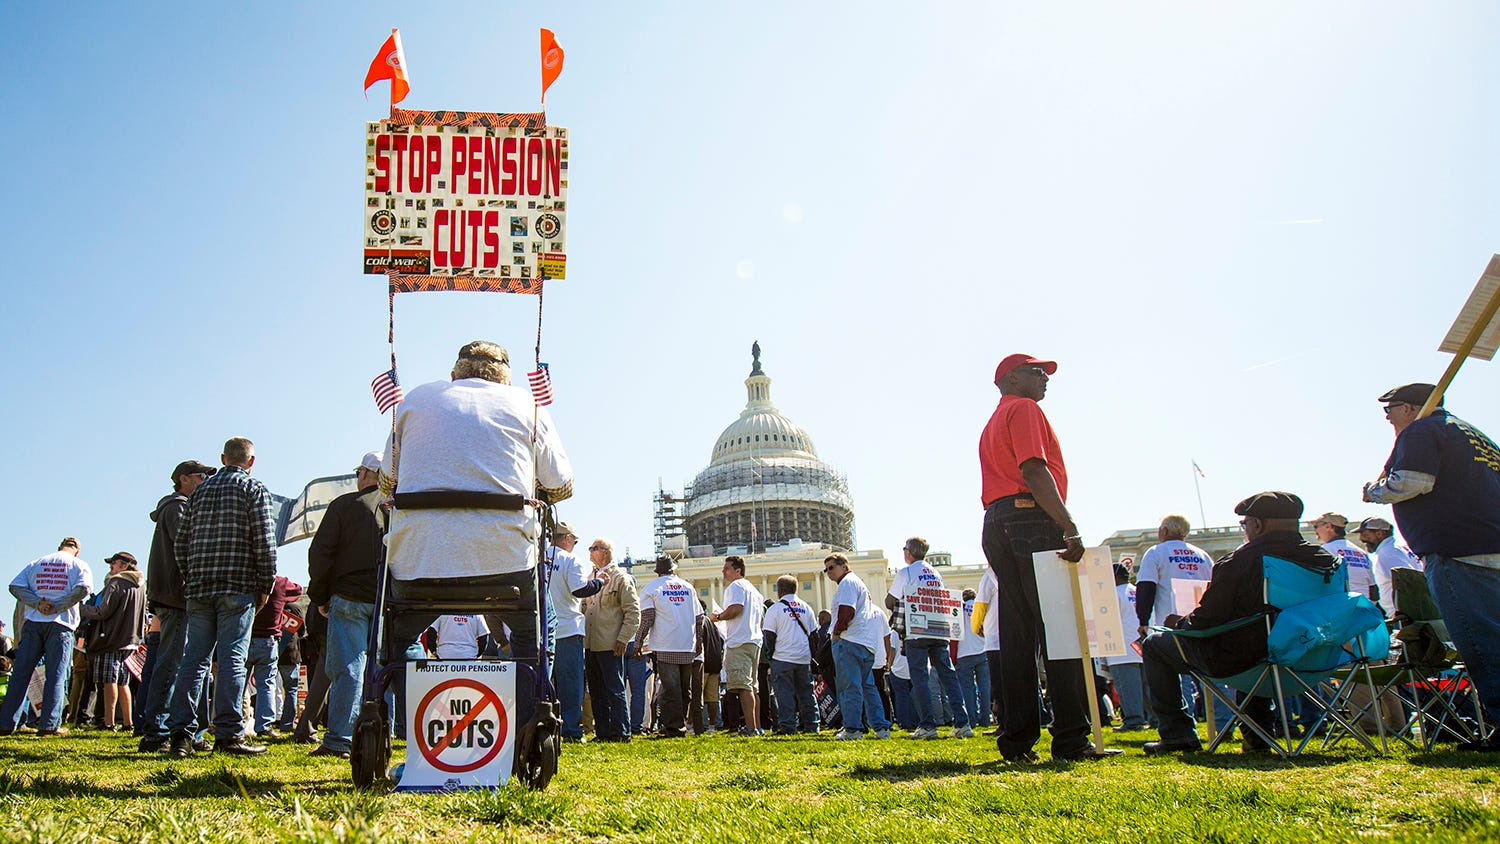 Pension promises rally draws thousands to D C